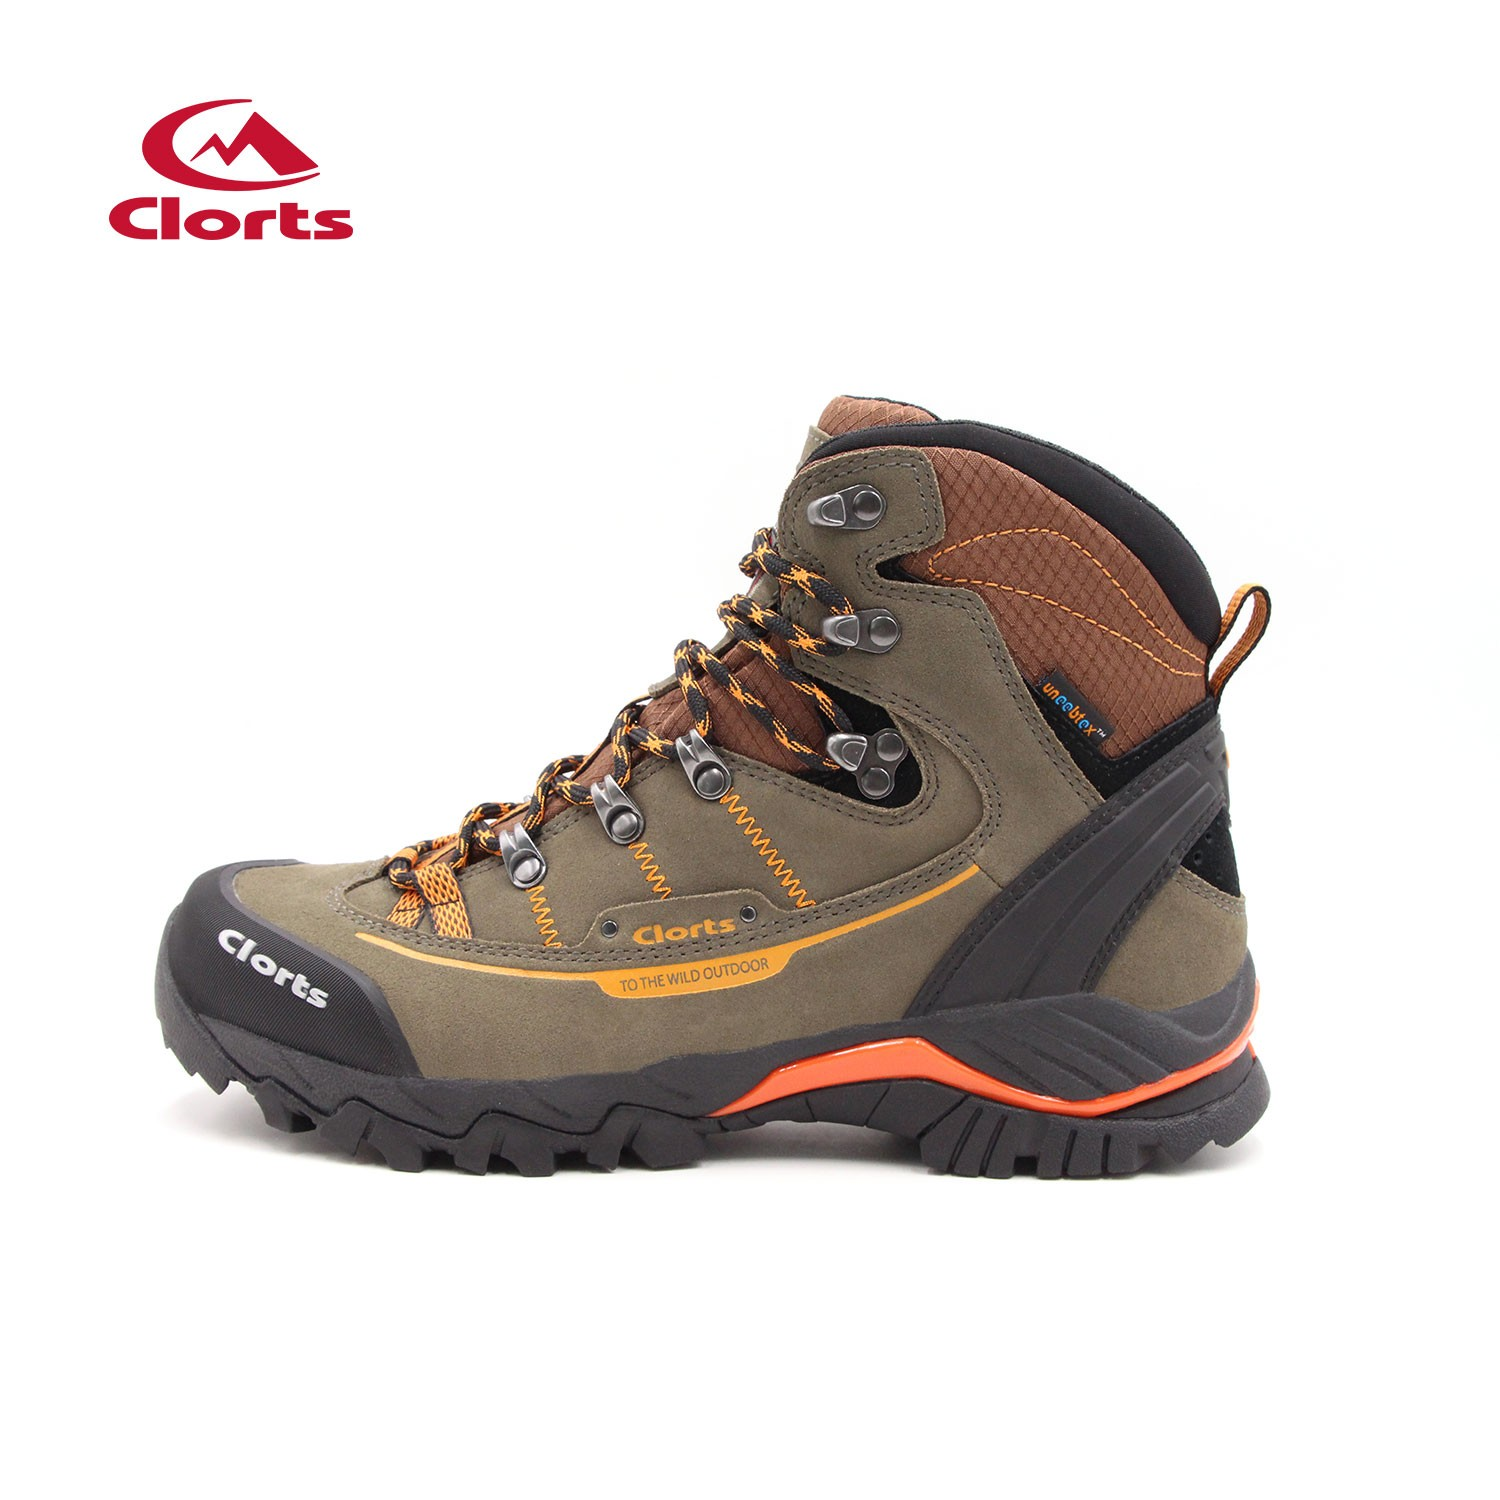 Clorts Mens Mid Outdoor Mochilero Trekking Trails Boots Marrón